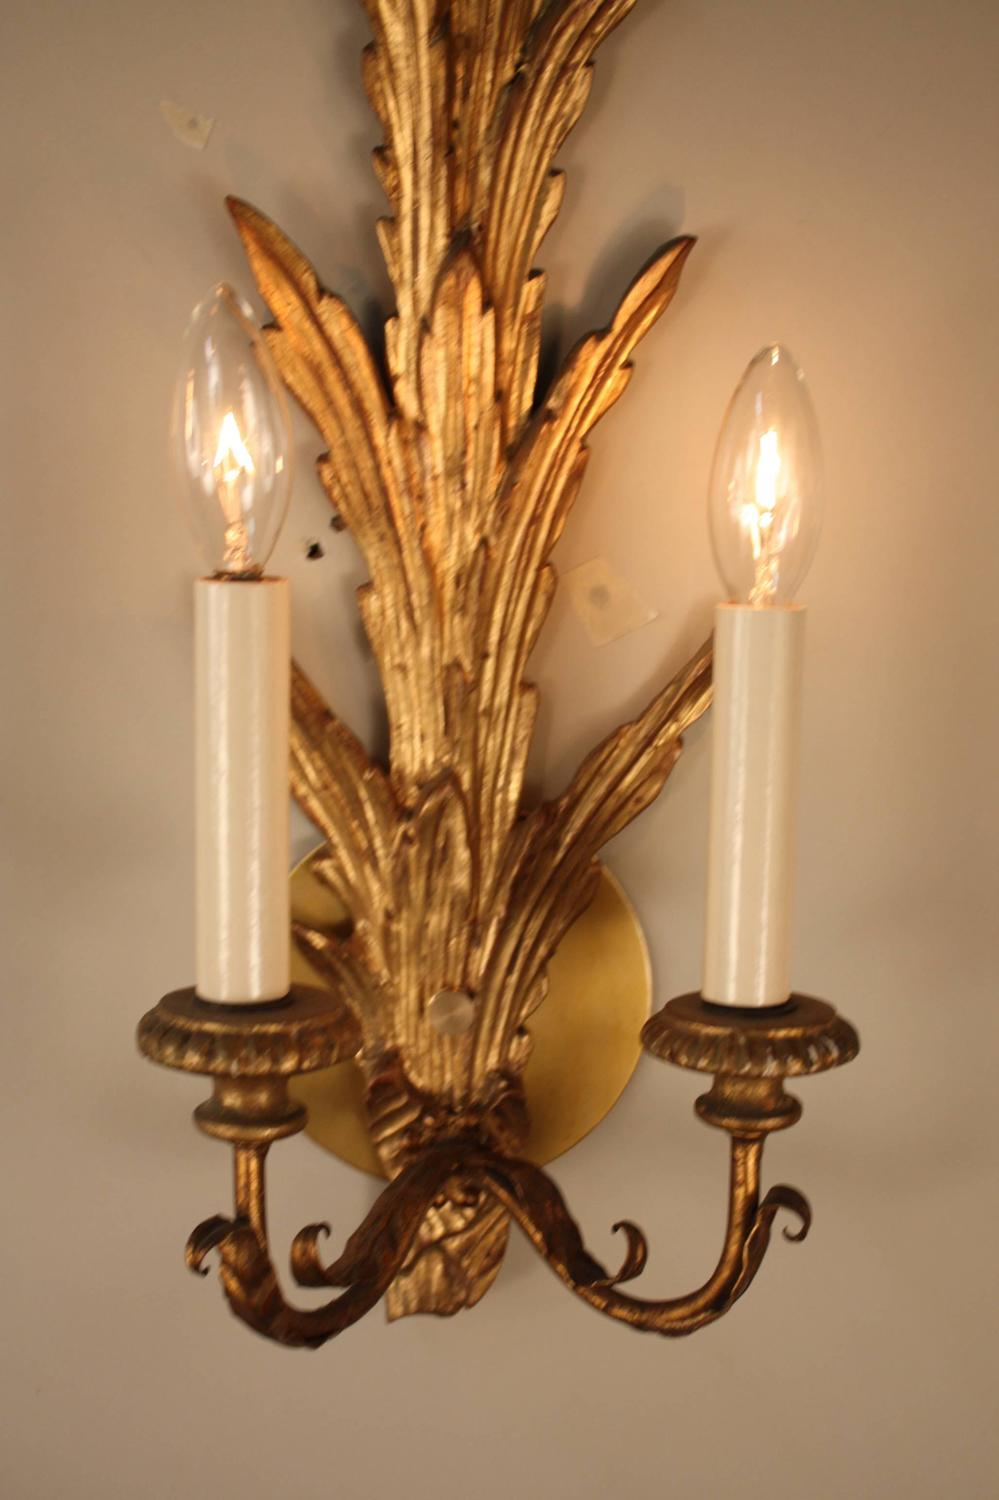 Wall Sconces Italian : Pair of Italian Giltwood Wall Sconces at 1stdibs